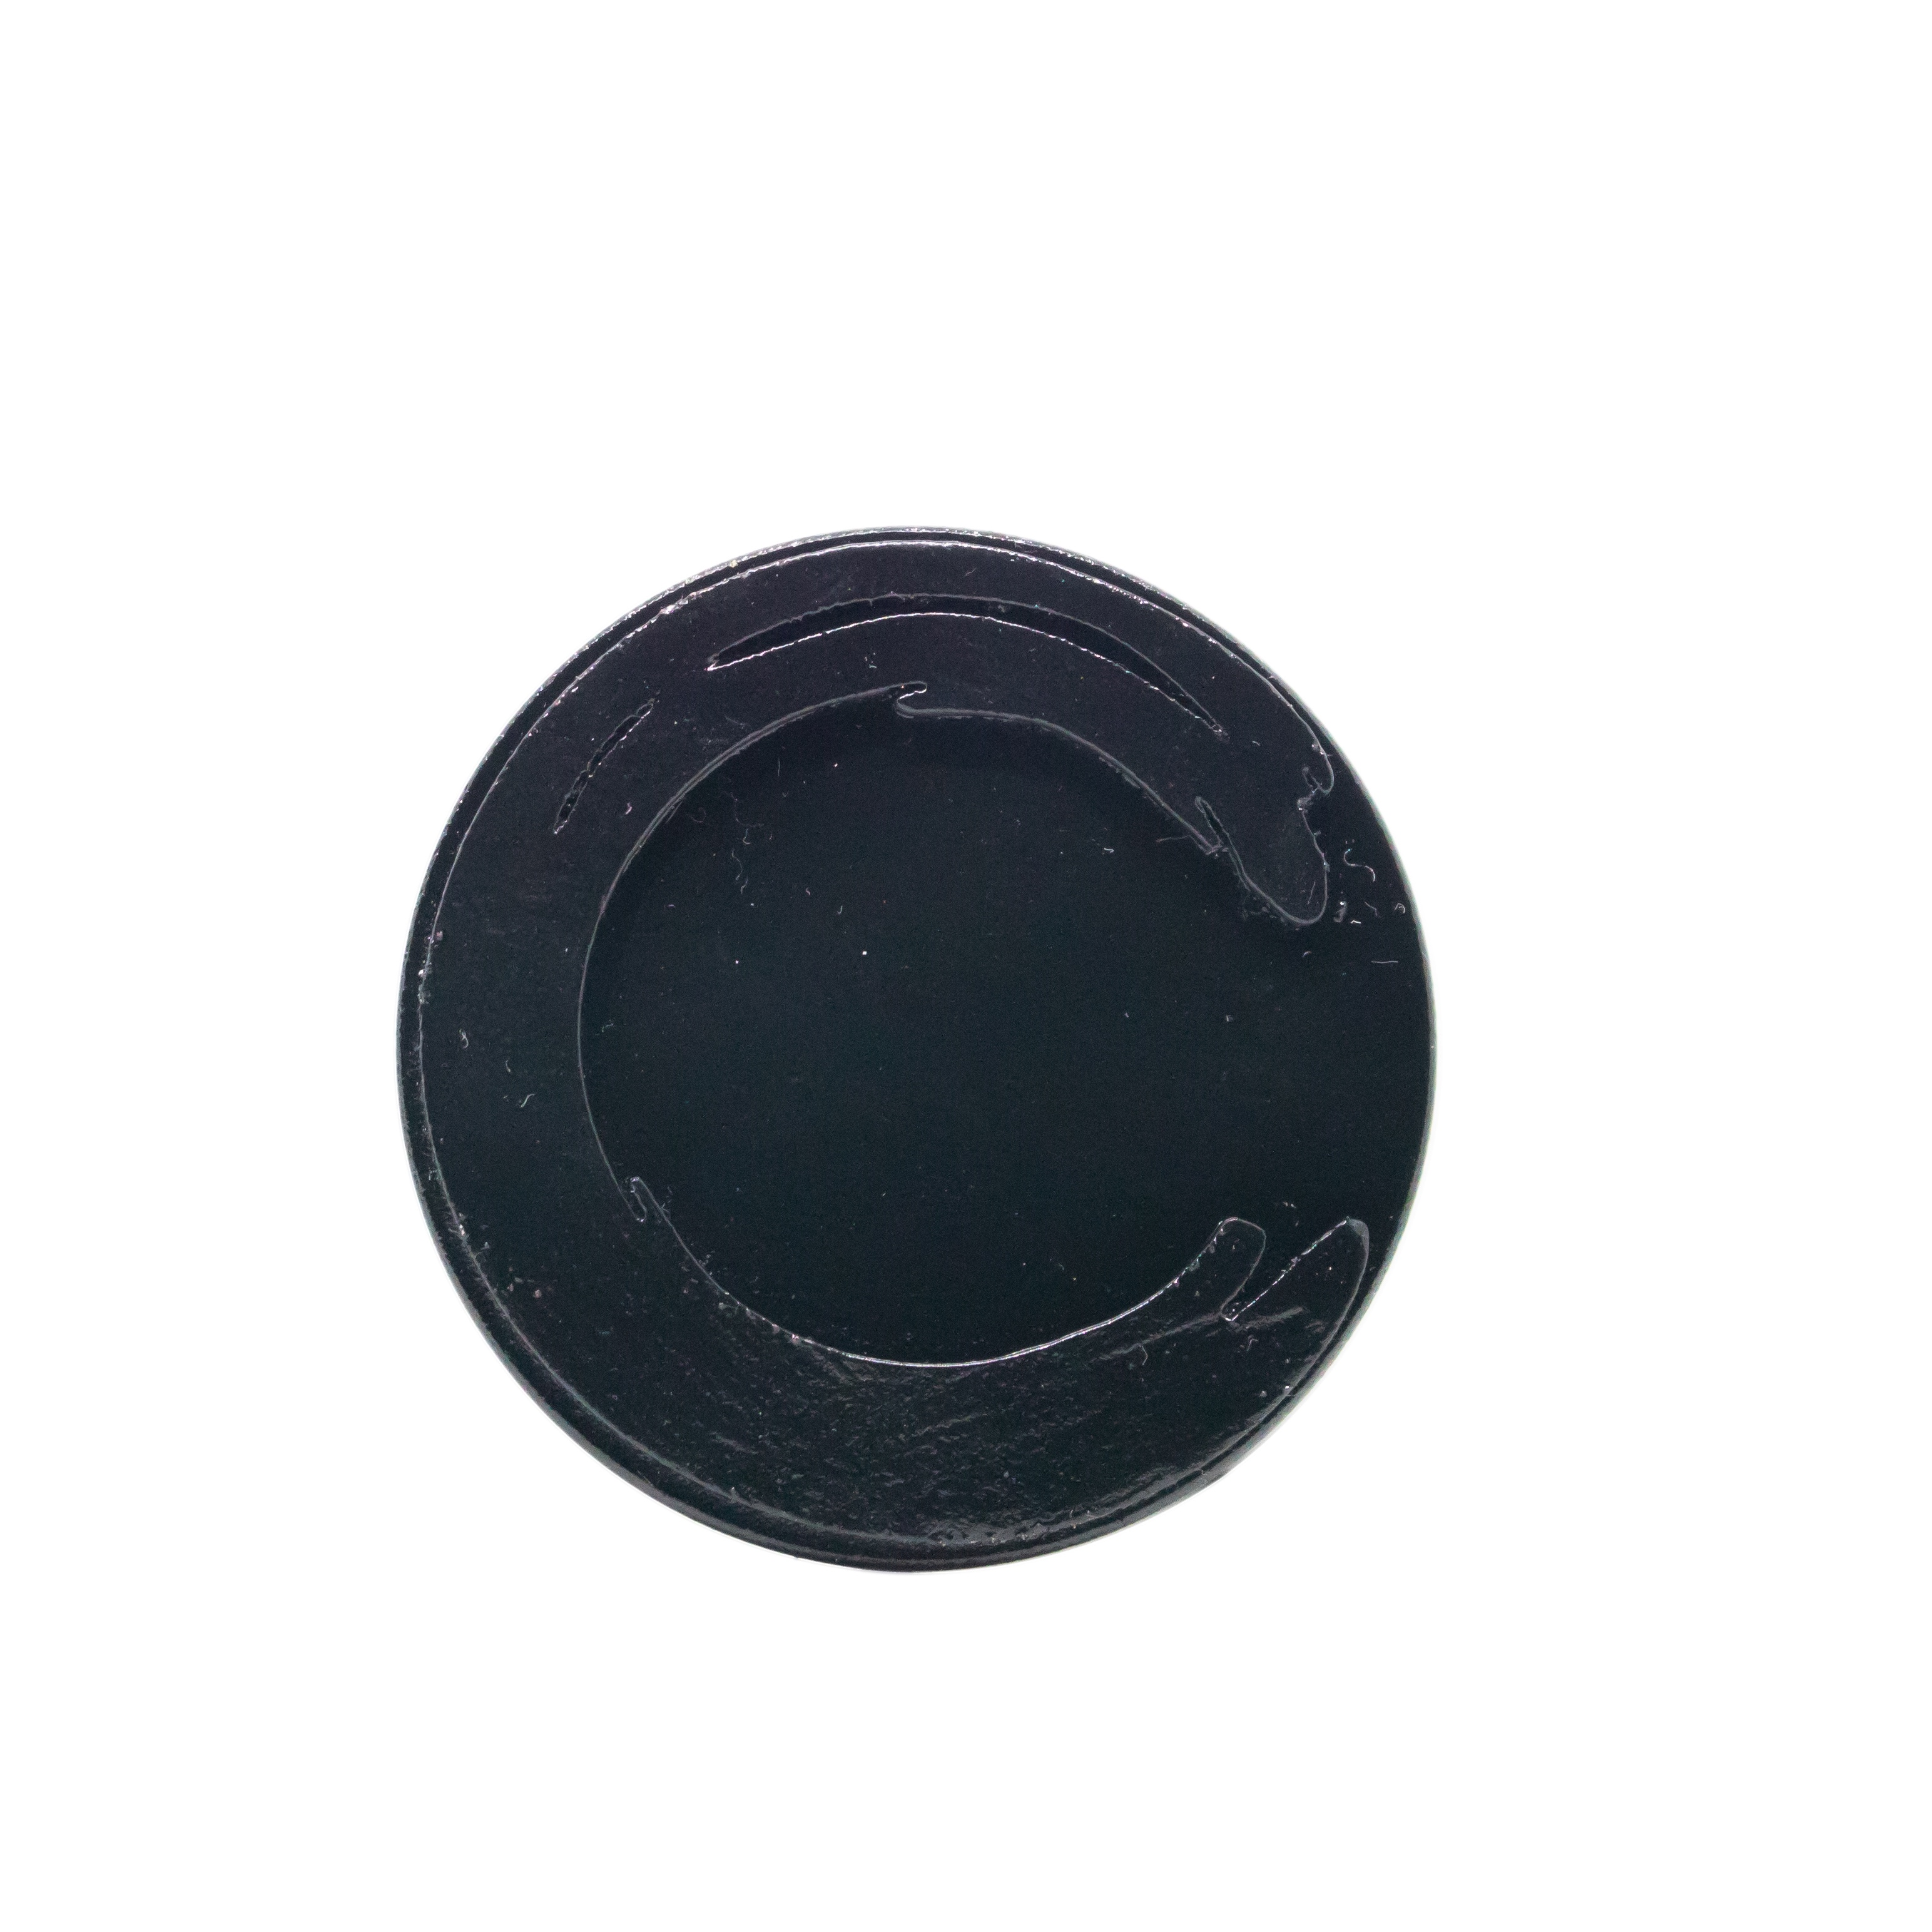 Hand Dyed limited Edition Enso Black Brooch No.3